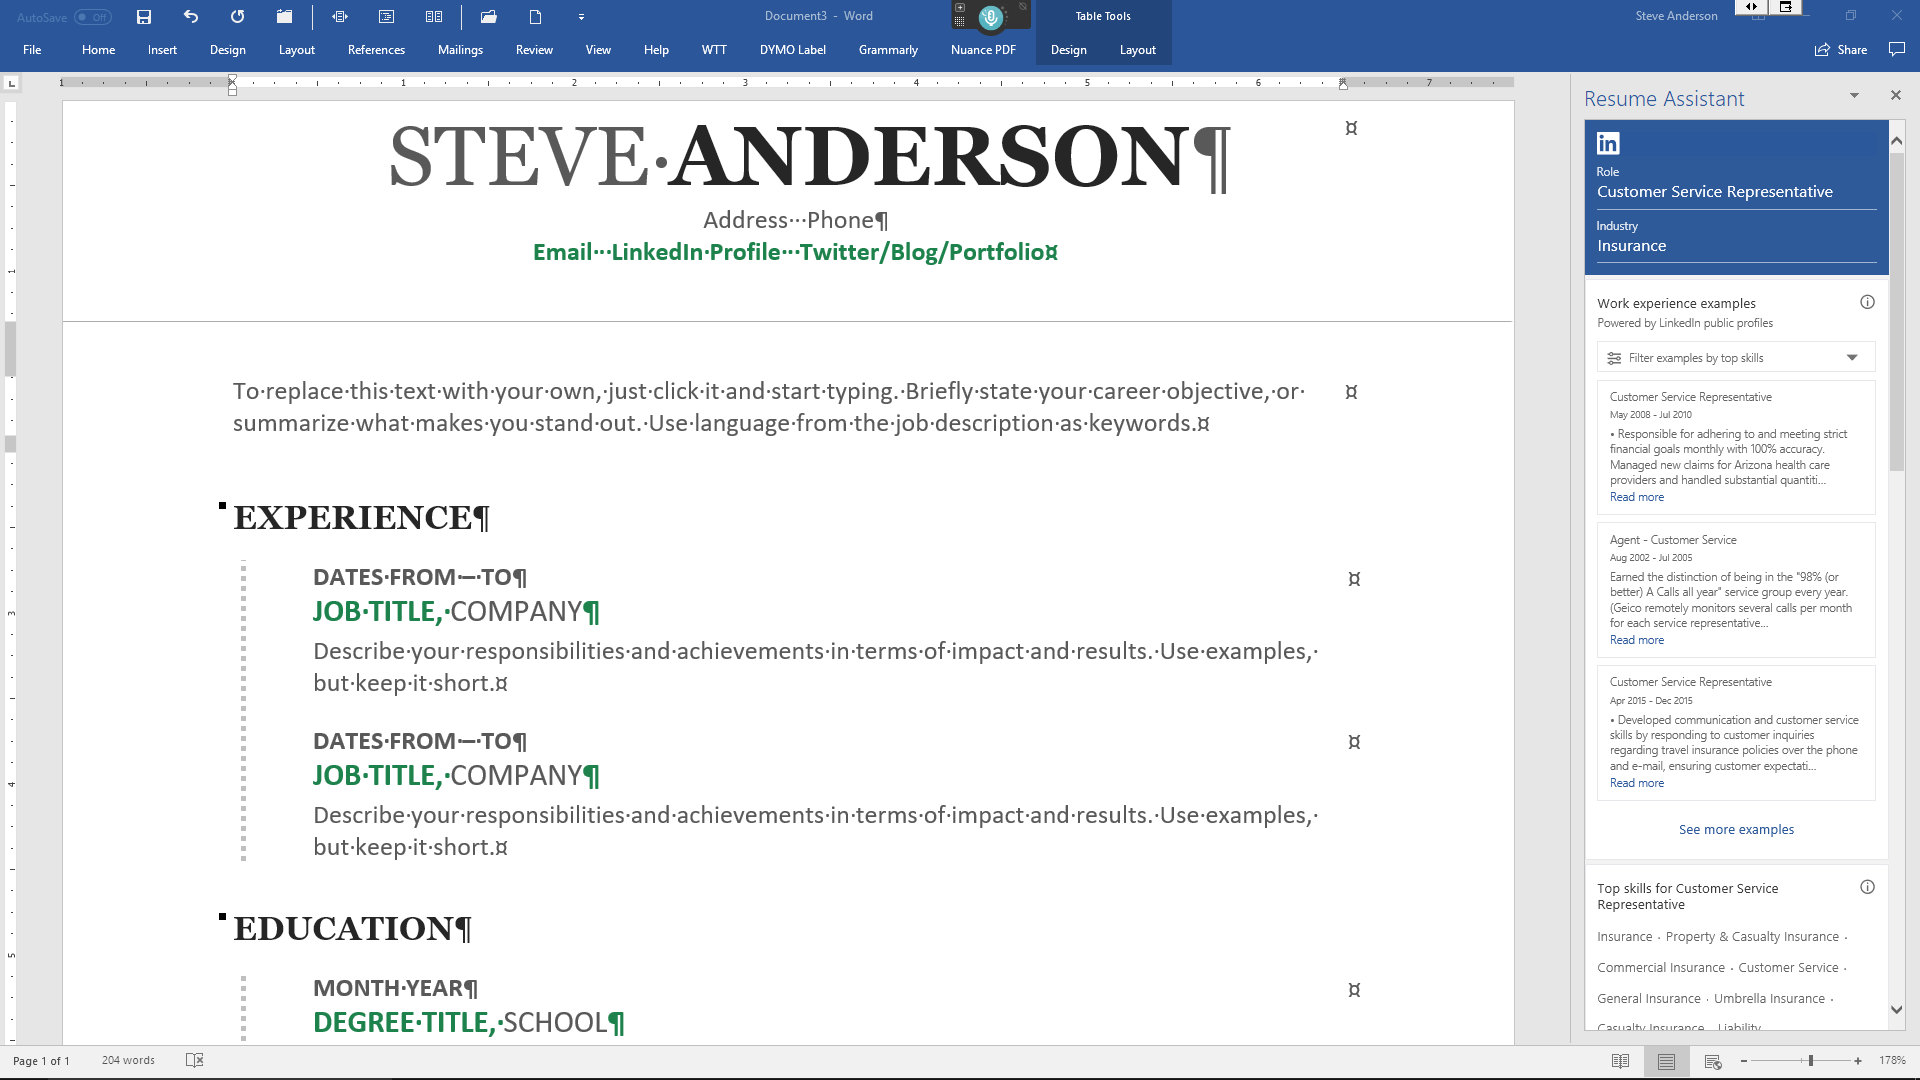 resume Linkdin Resume how to use linkedin resume assistant in microsoft word steve anderson